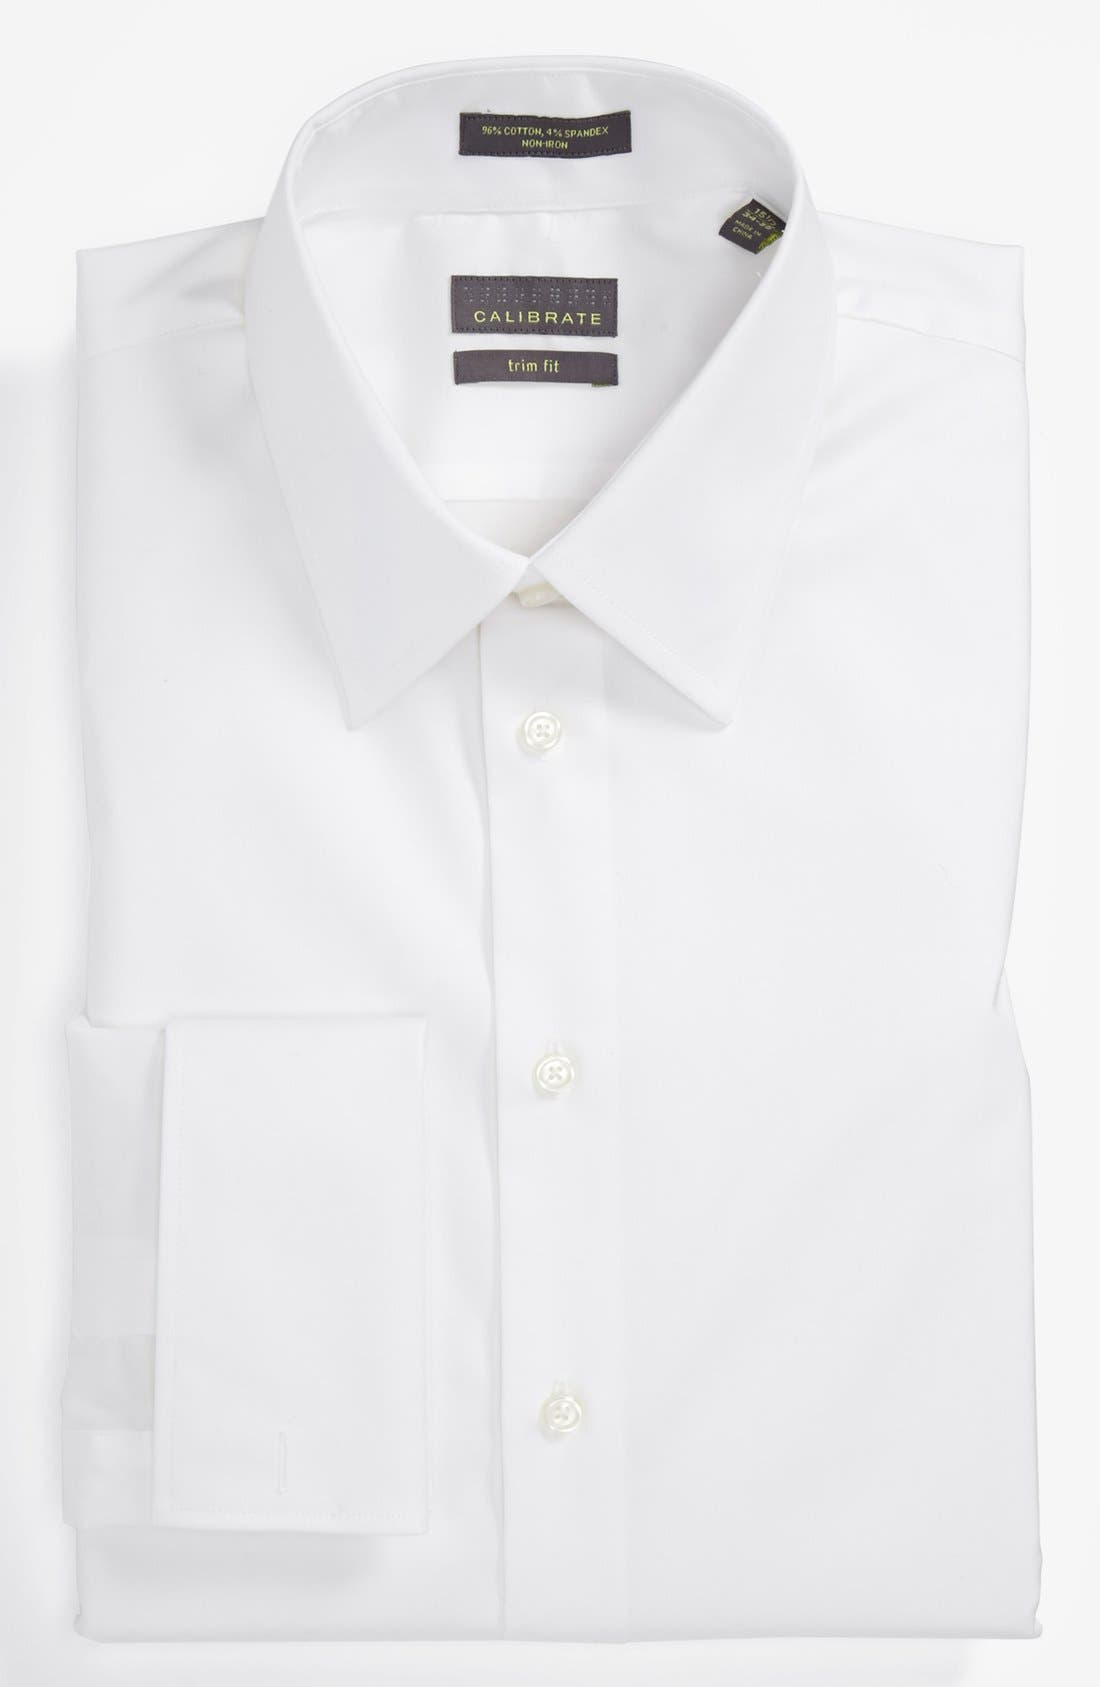 Main Image - Calibrate Trim Fit Non Iron Dress Shirt